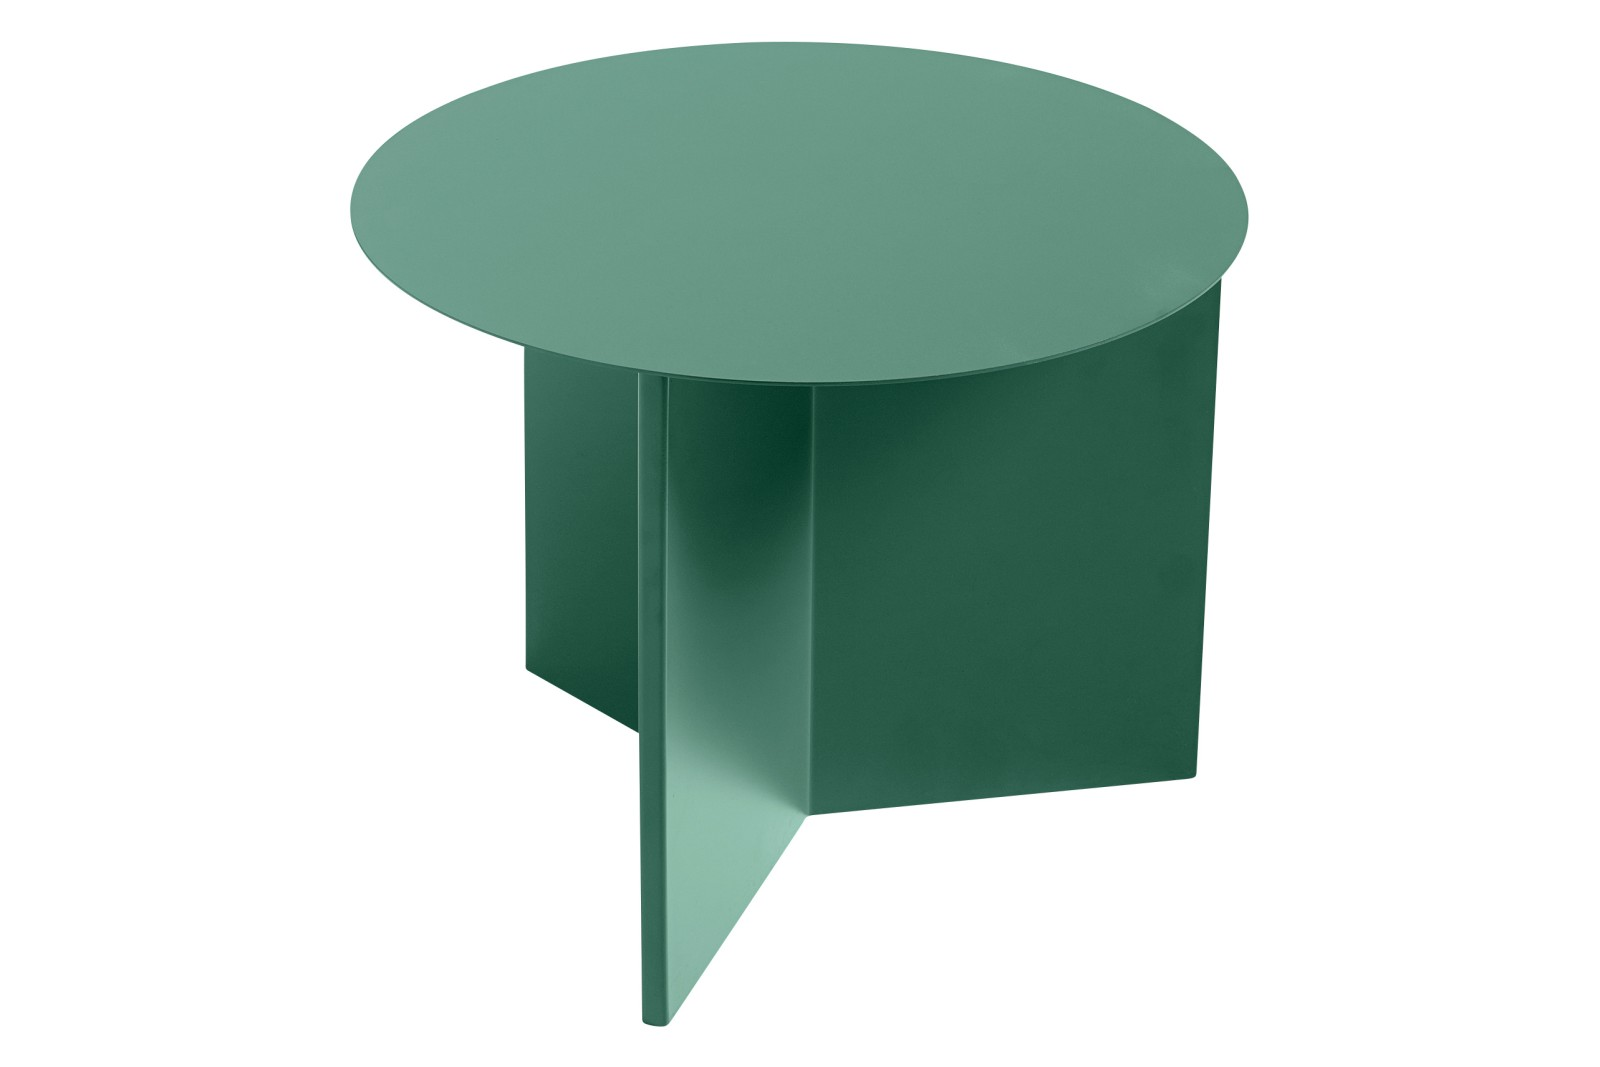 Slit Round Side Table Green, 045 cm